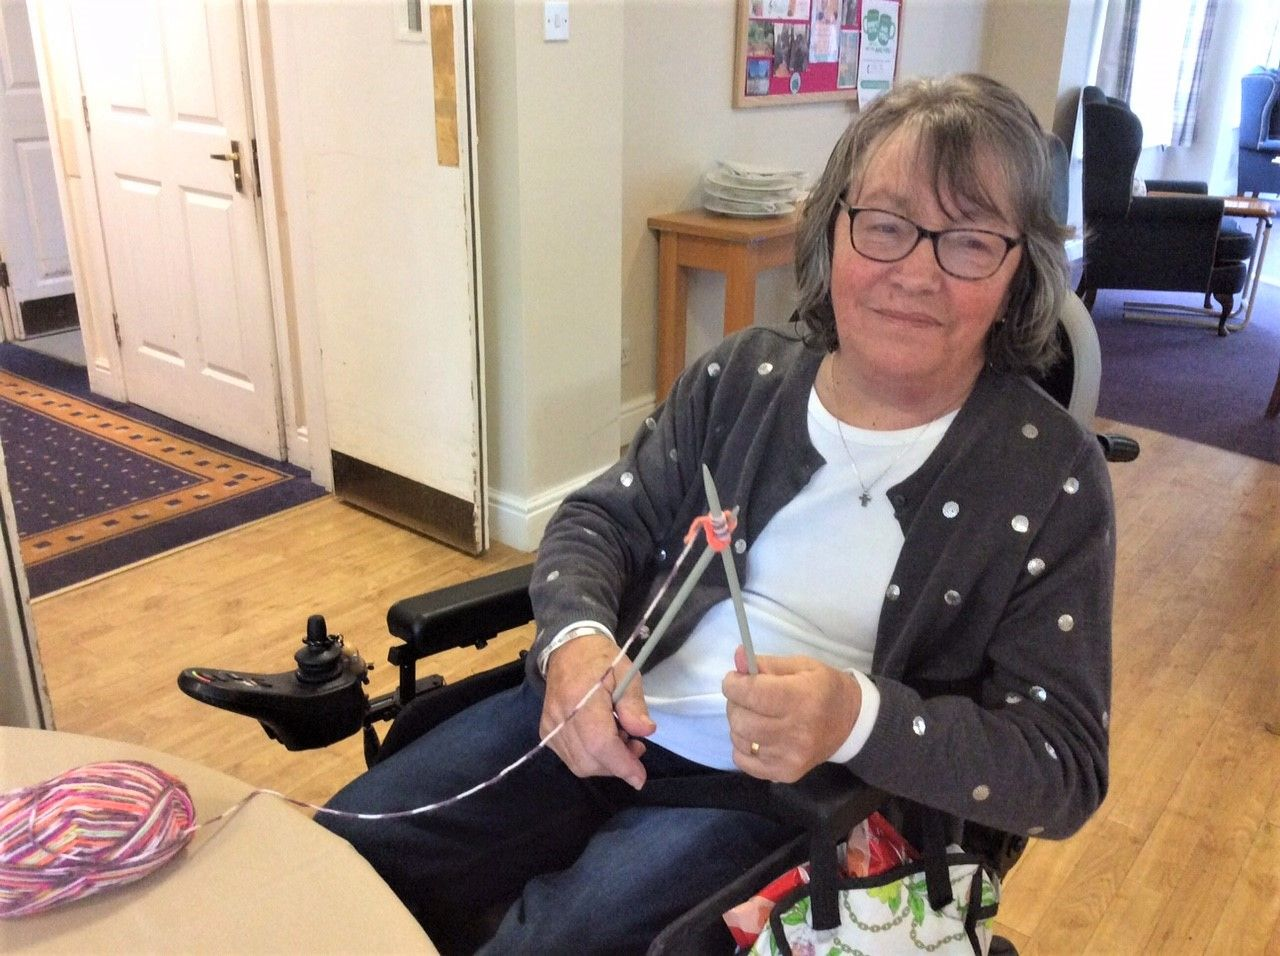 Flowerdown Care Home in Winchester learn how to knit for the day